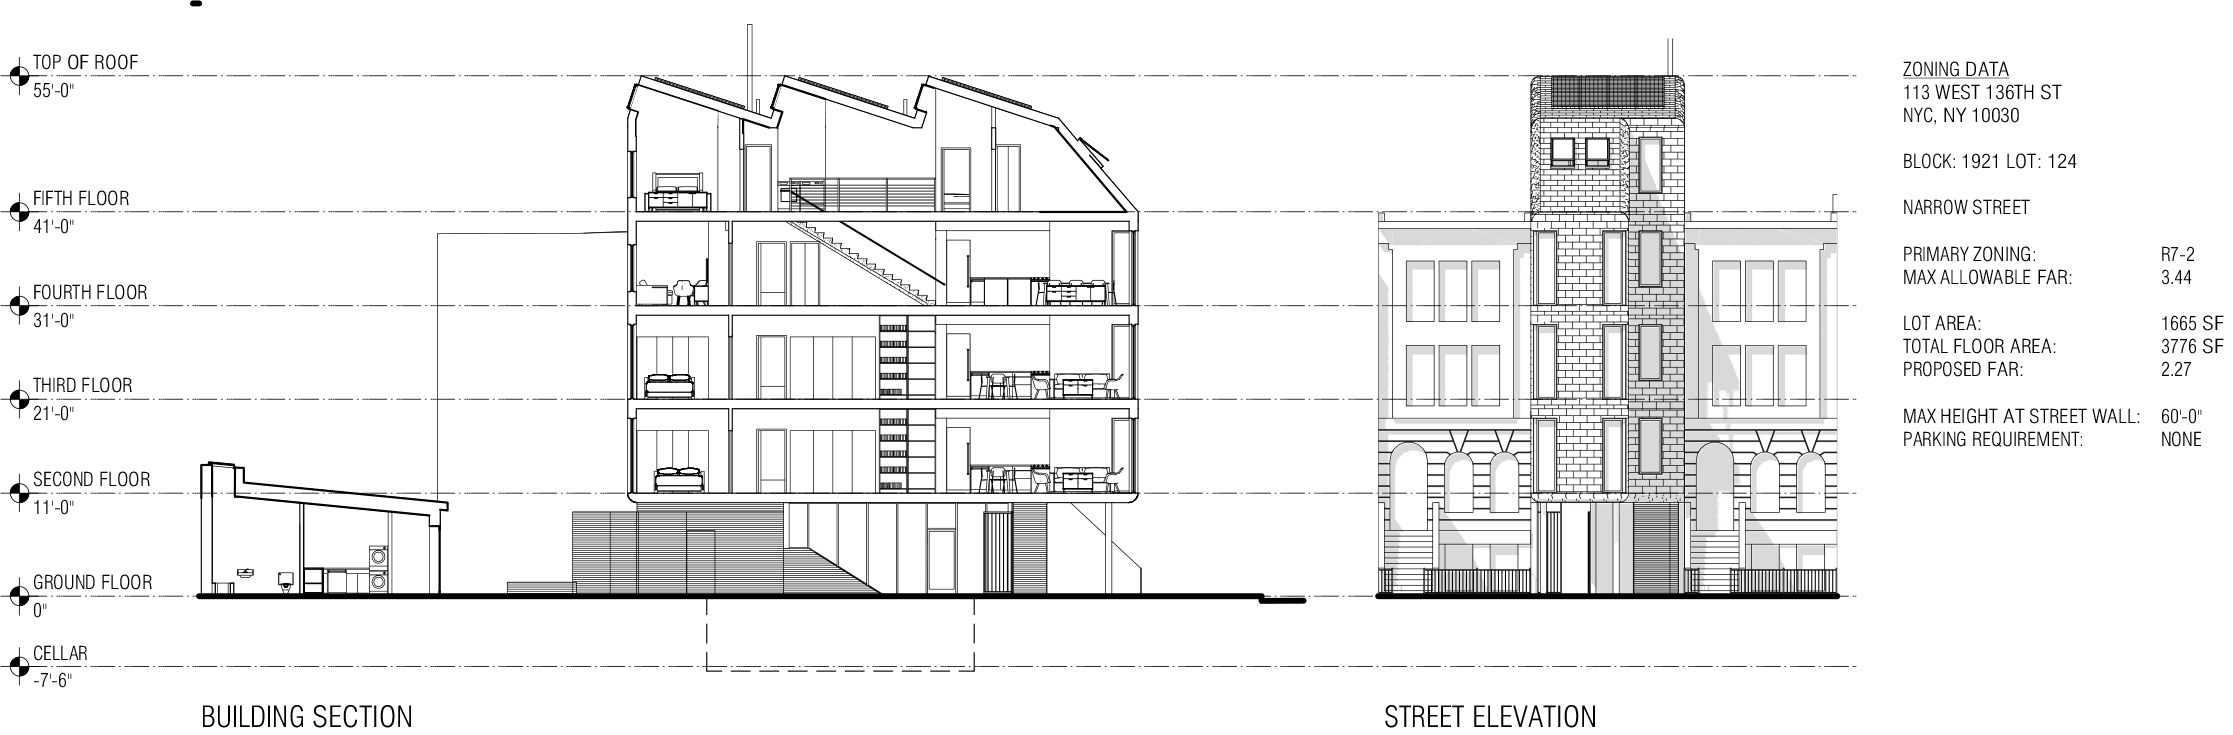 Section and Elevation.png